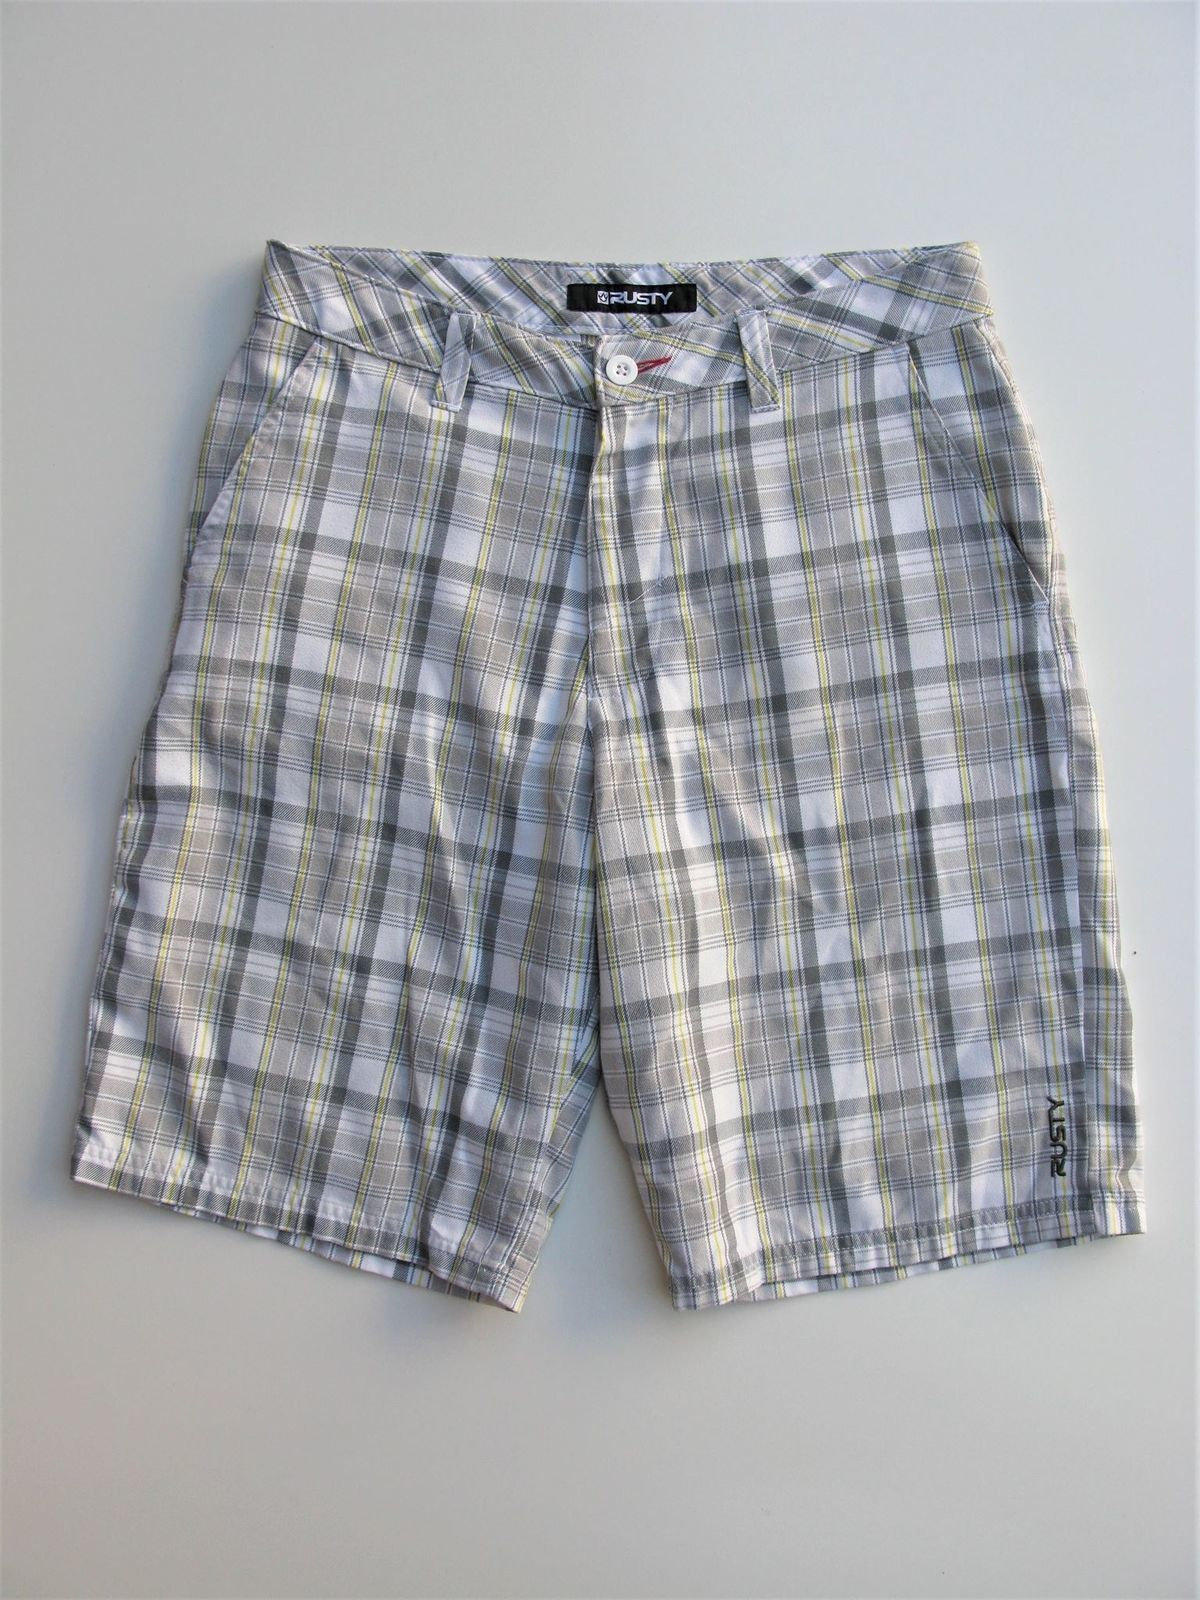 Rusty Bermuda Skater Shorts Grey with Yellow Plaid  32 $56